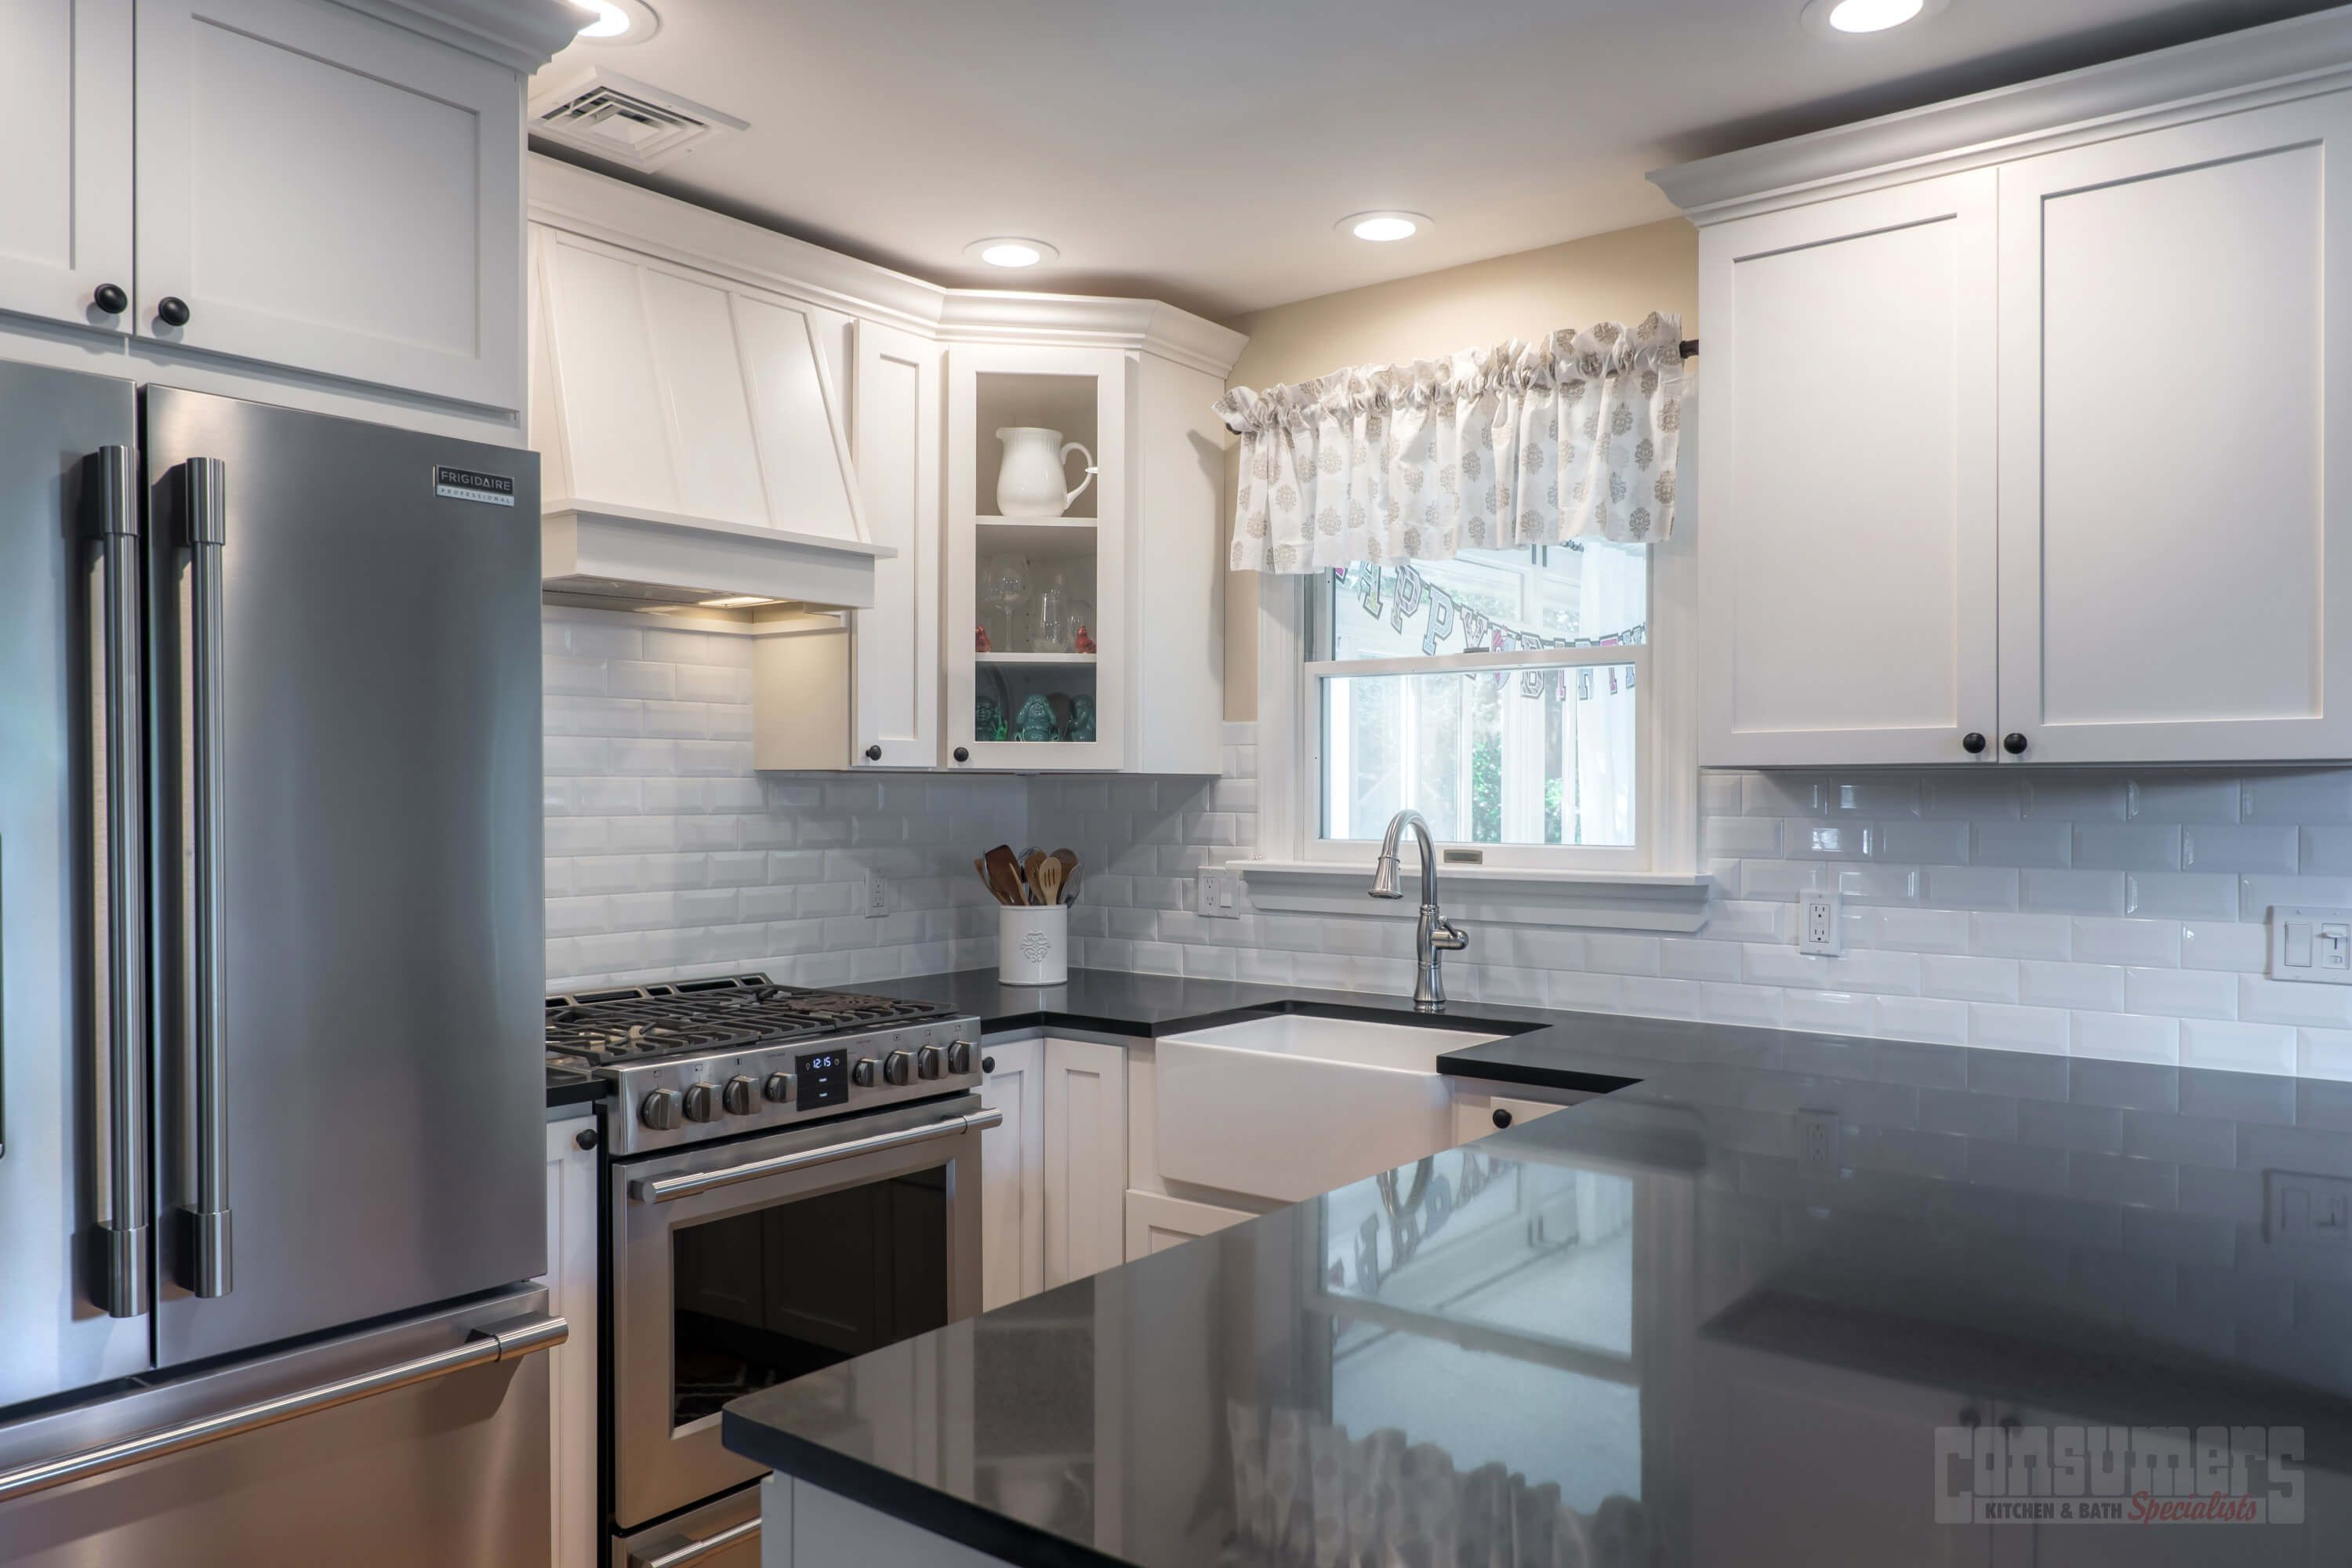 Pin By Consumers Kitchens Baths On Northport Jewel Pinterest  Da29ce88eff57b6635a61d524b5e907c 414894184414635236